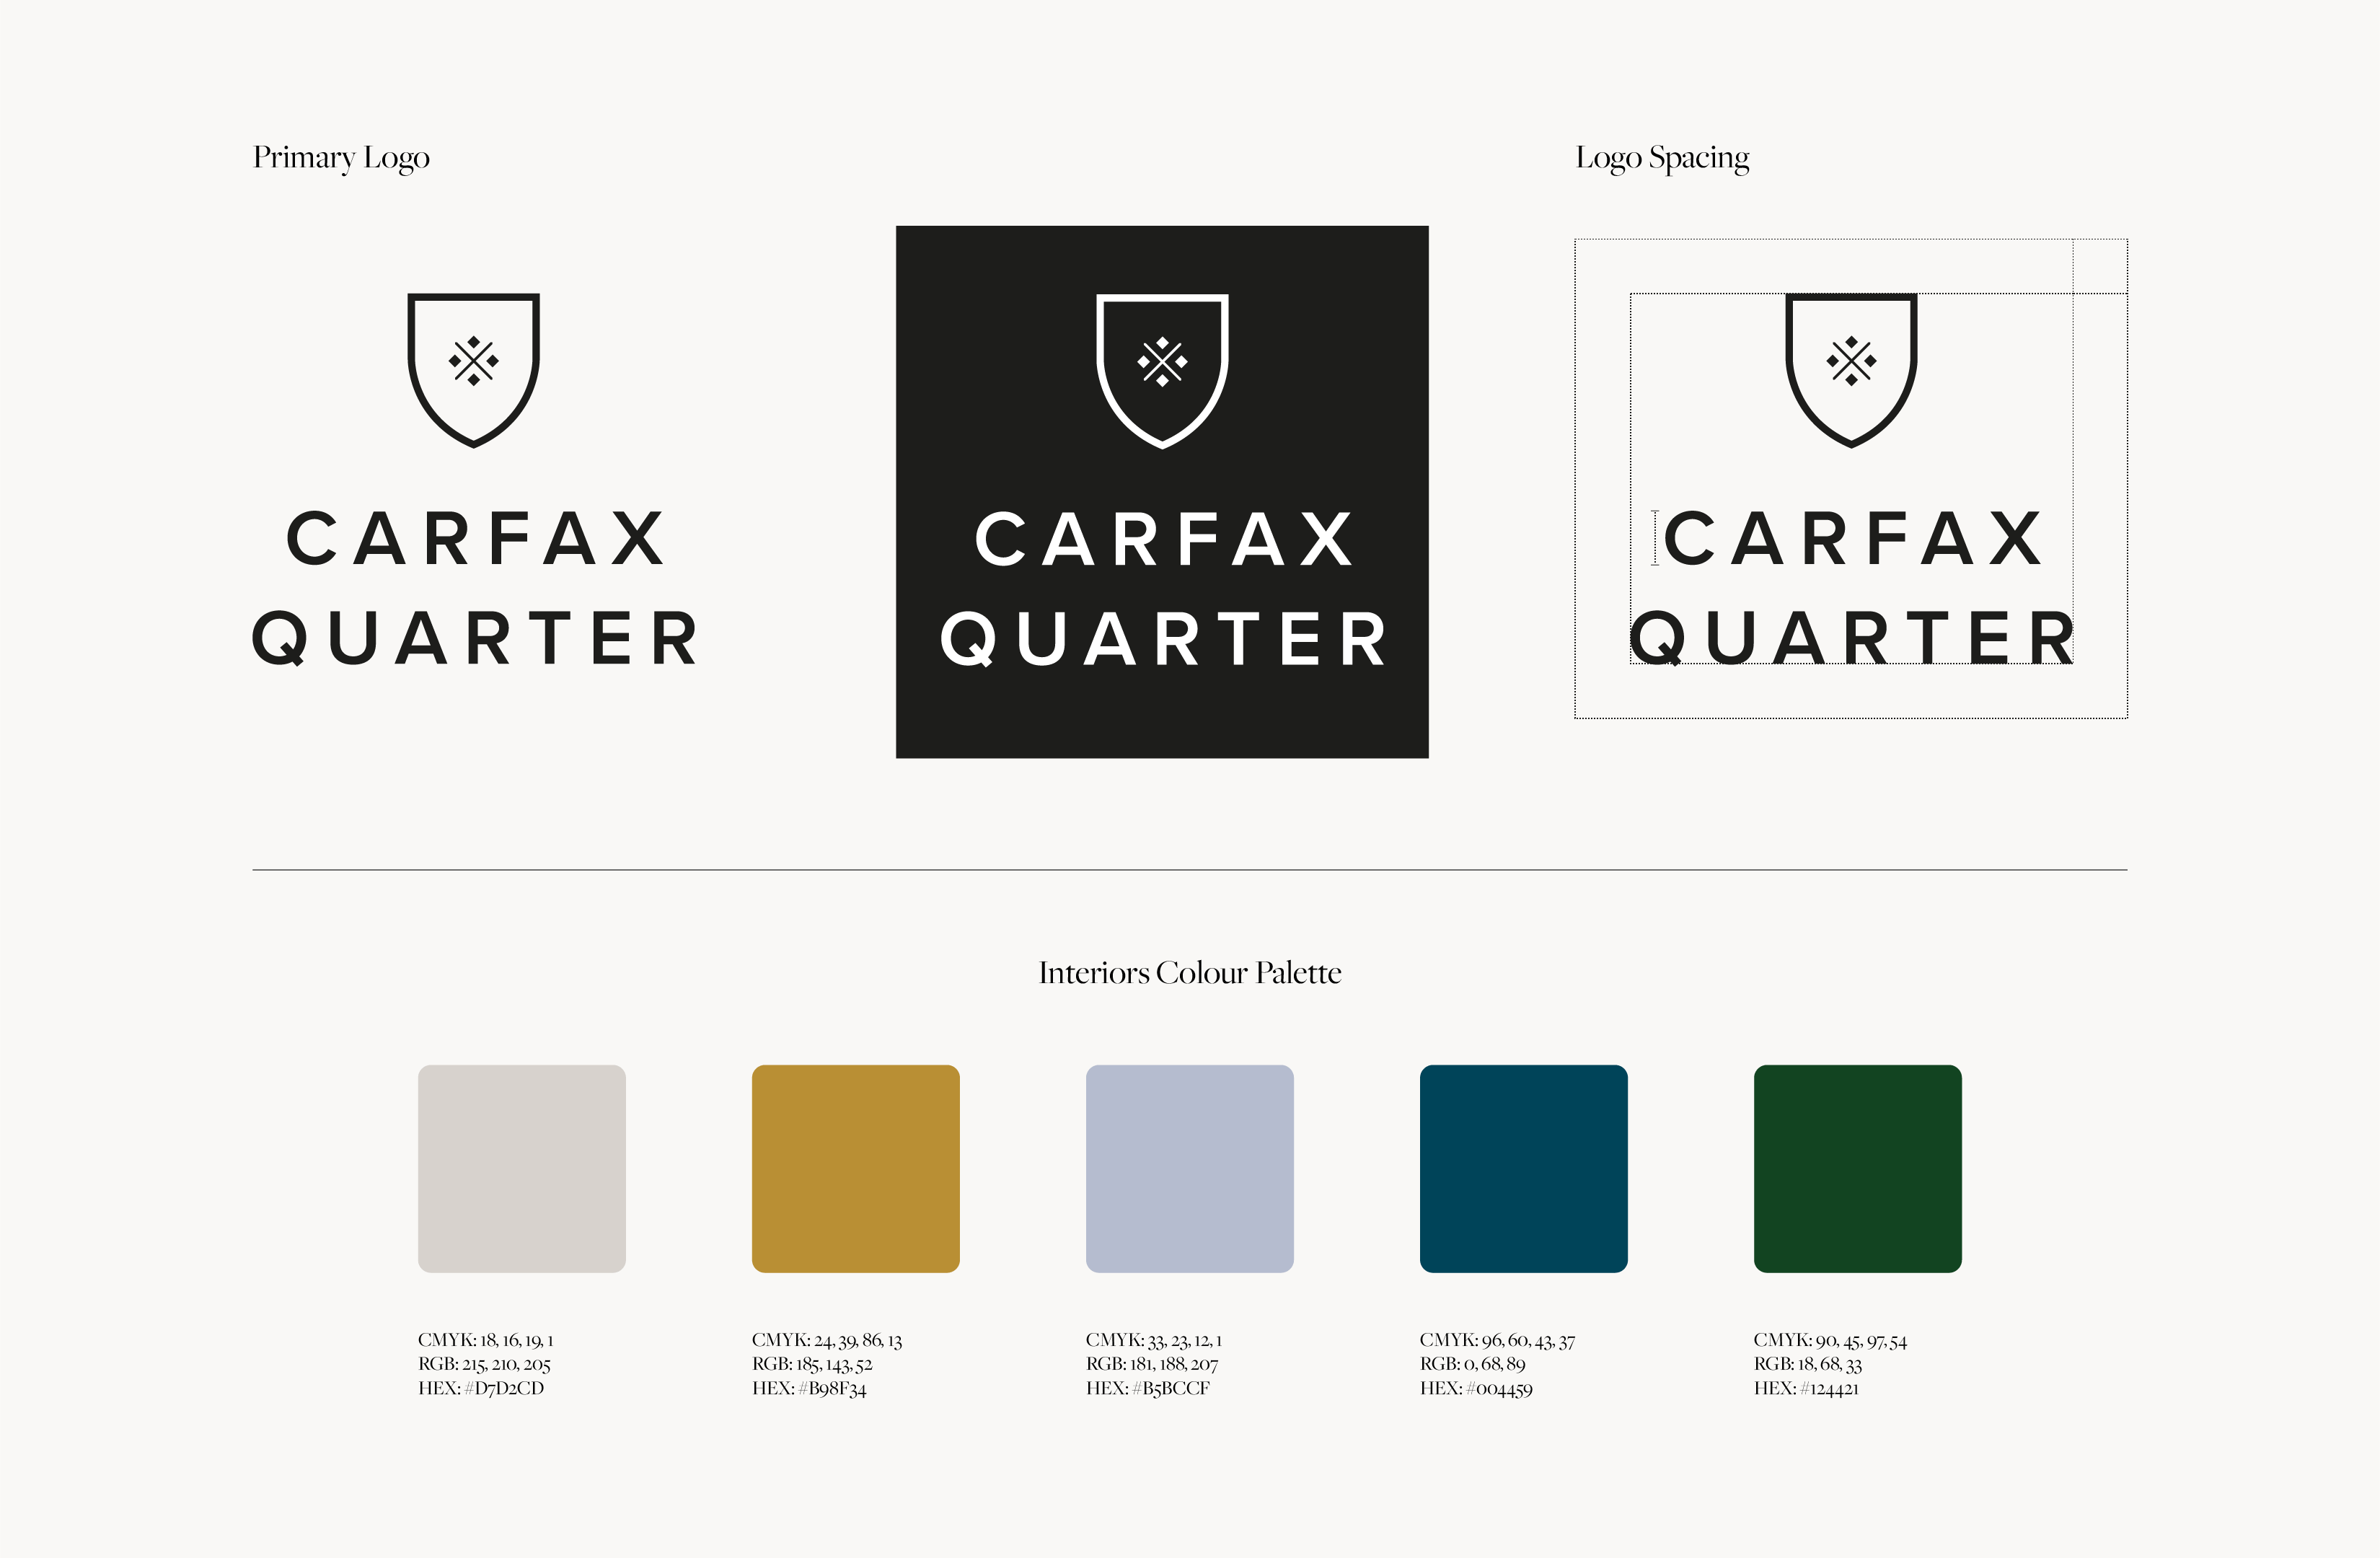 Carfax-Quarter-Guidelines